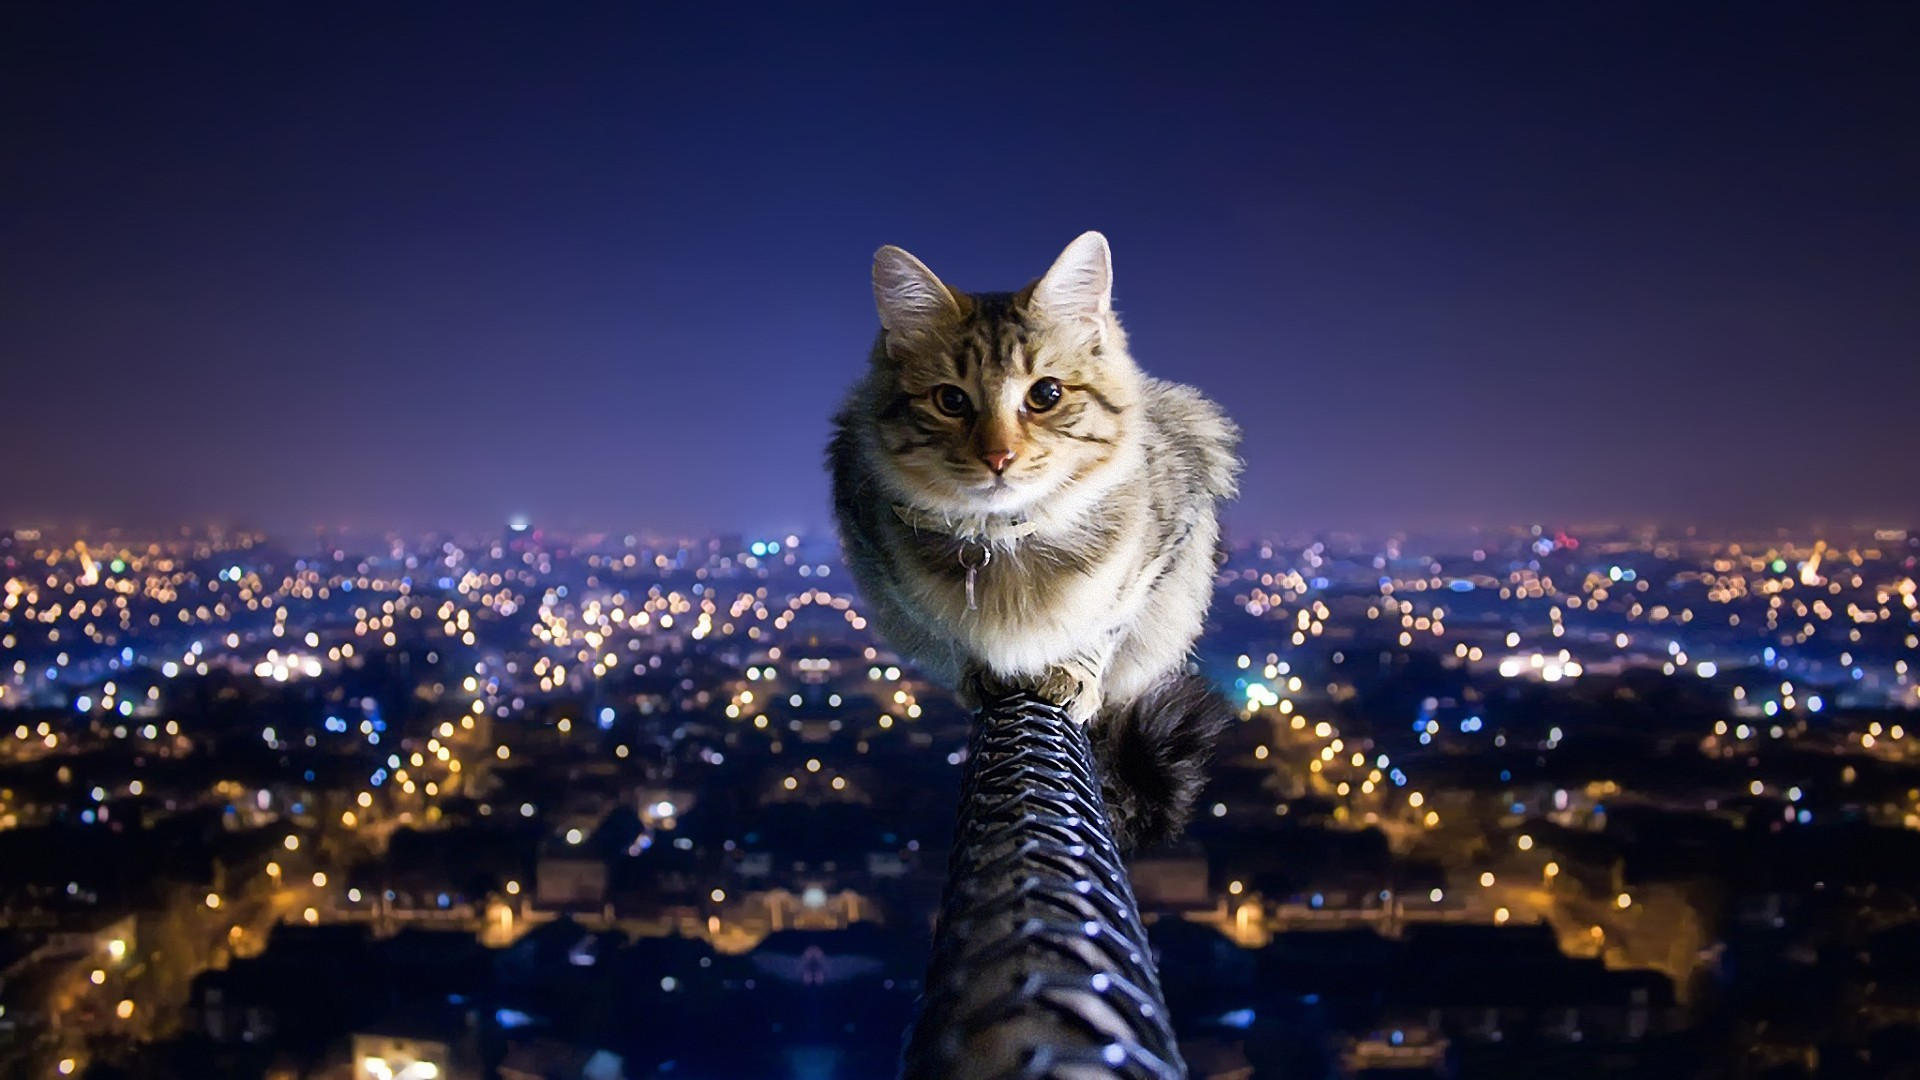 … cityscapes cats city lights balance nighttime pole wallpapers …